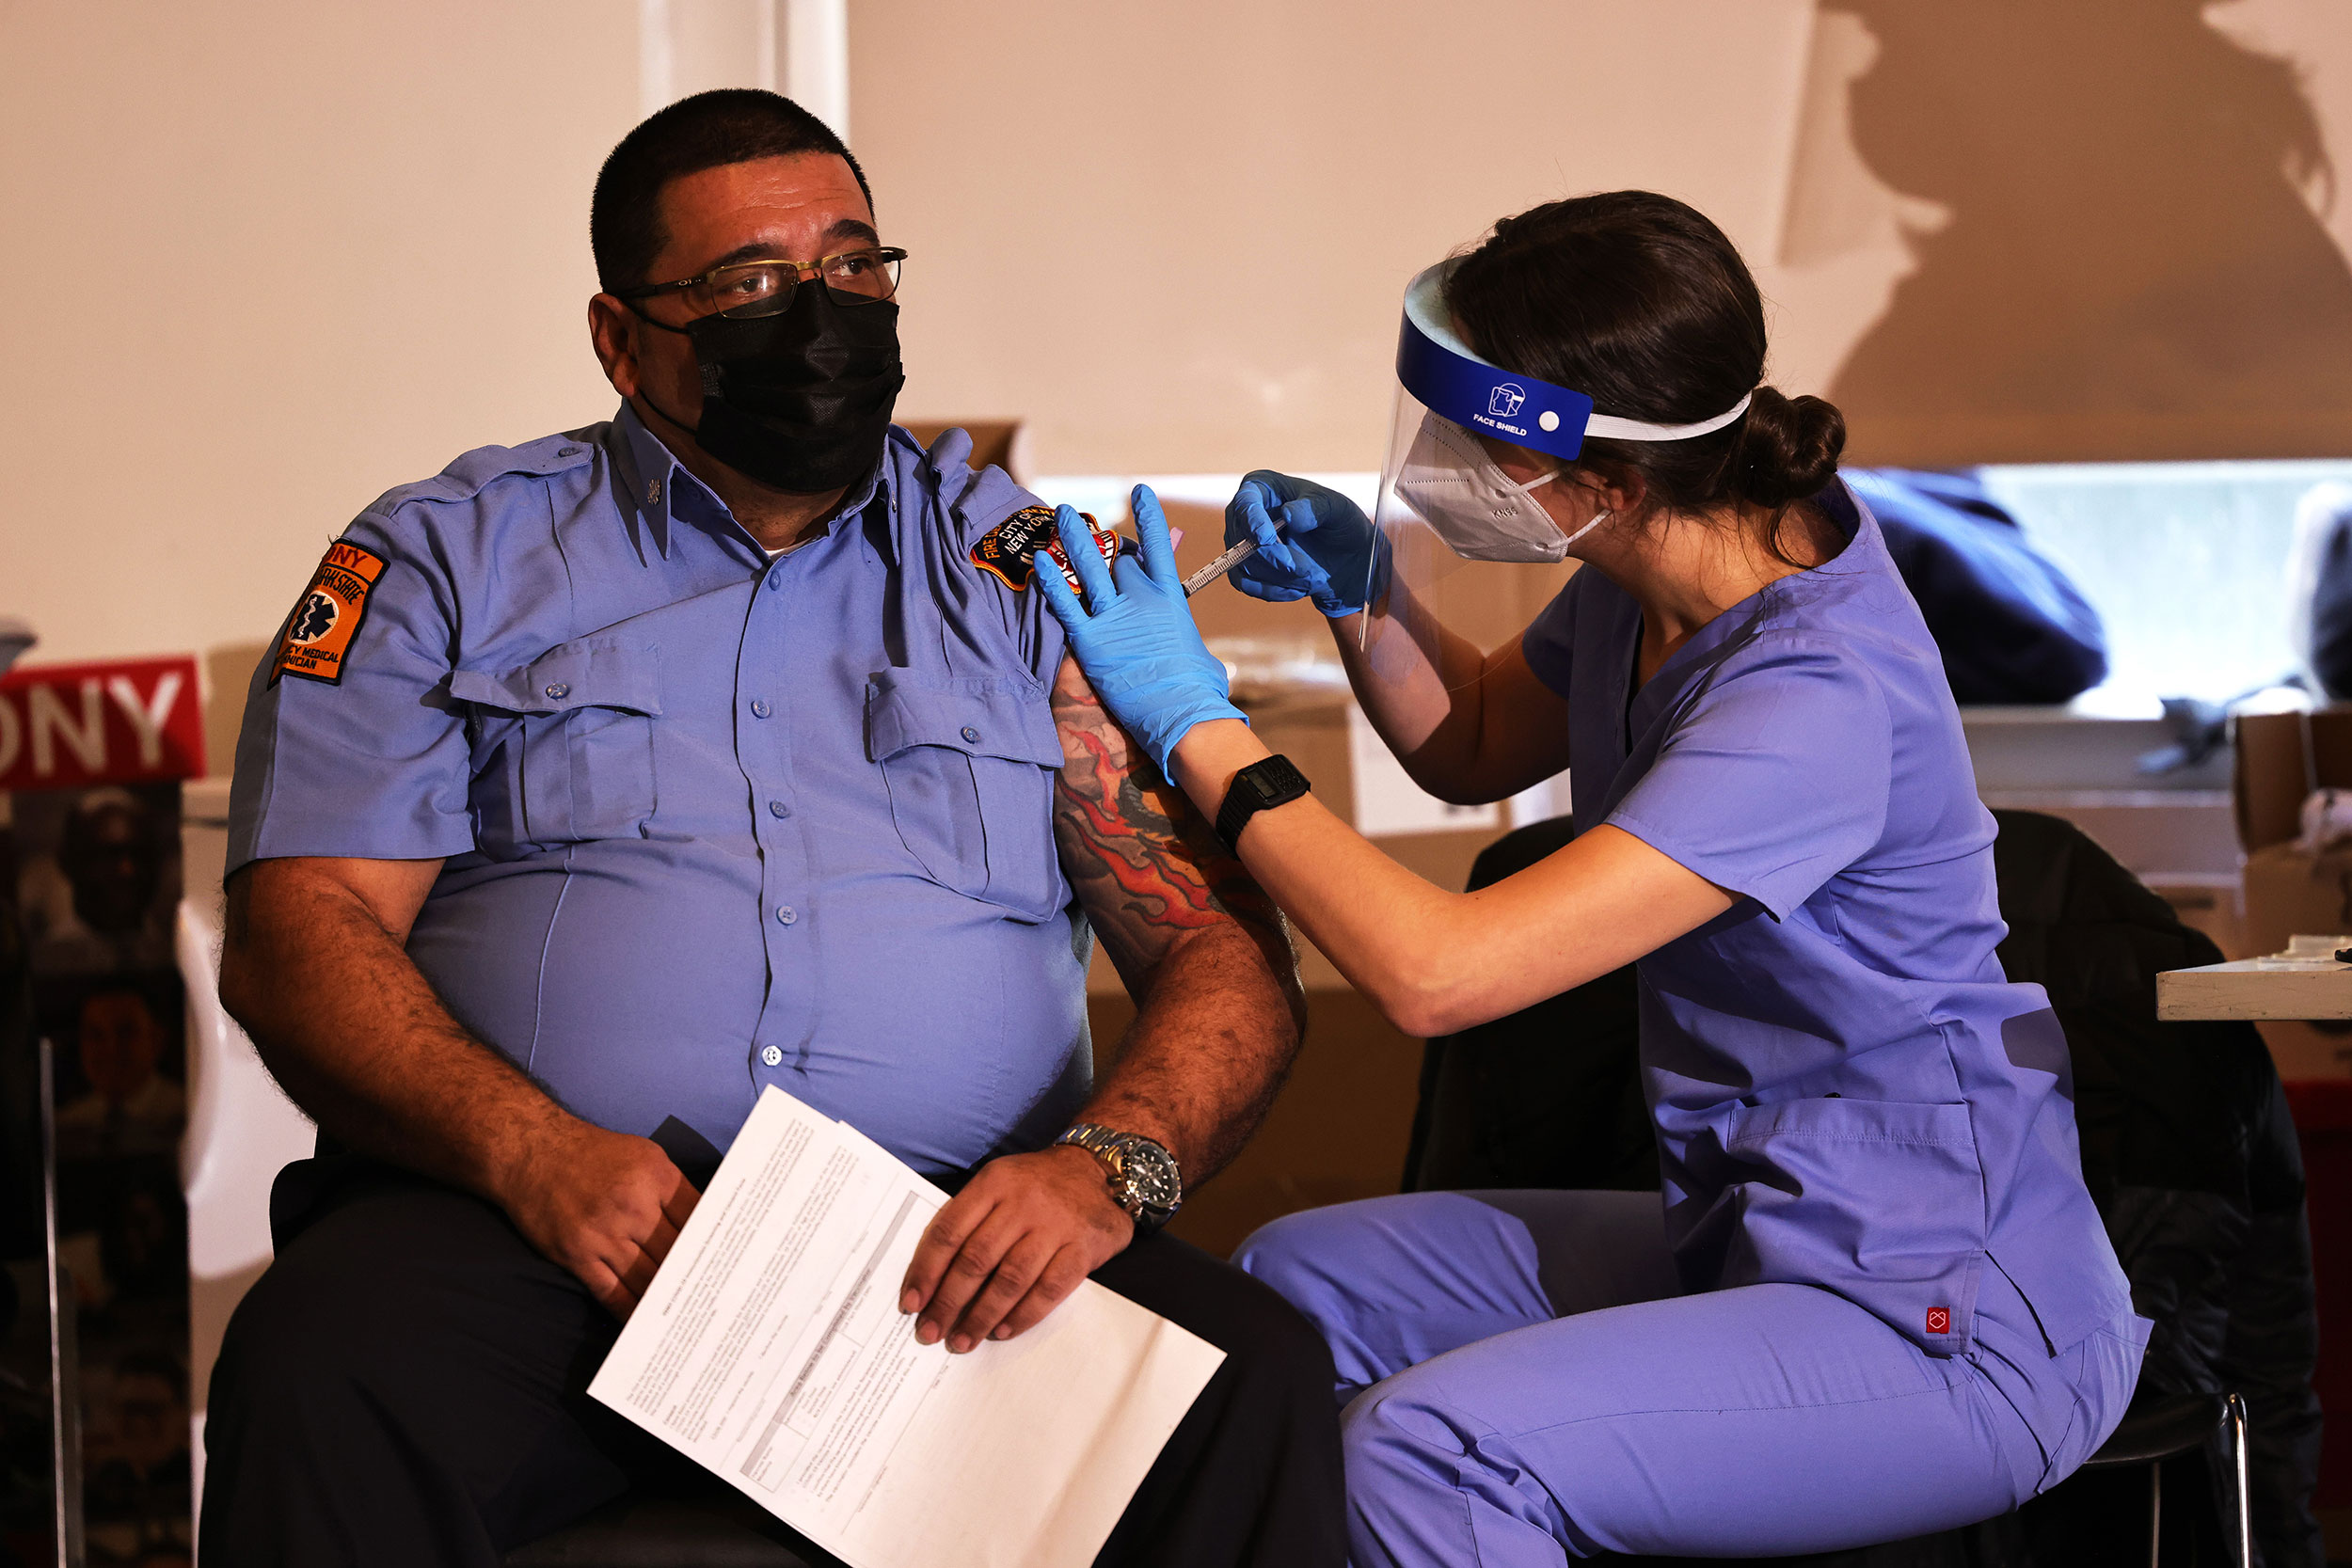 A member of FDNY EMS receives a Covid-19 vaccine at the FDNY Fire Training Academy in New York on December 23.